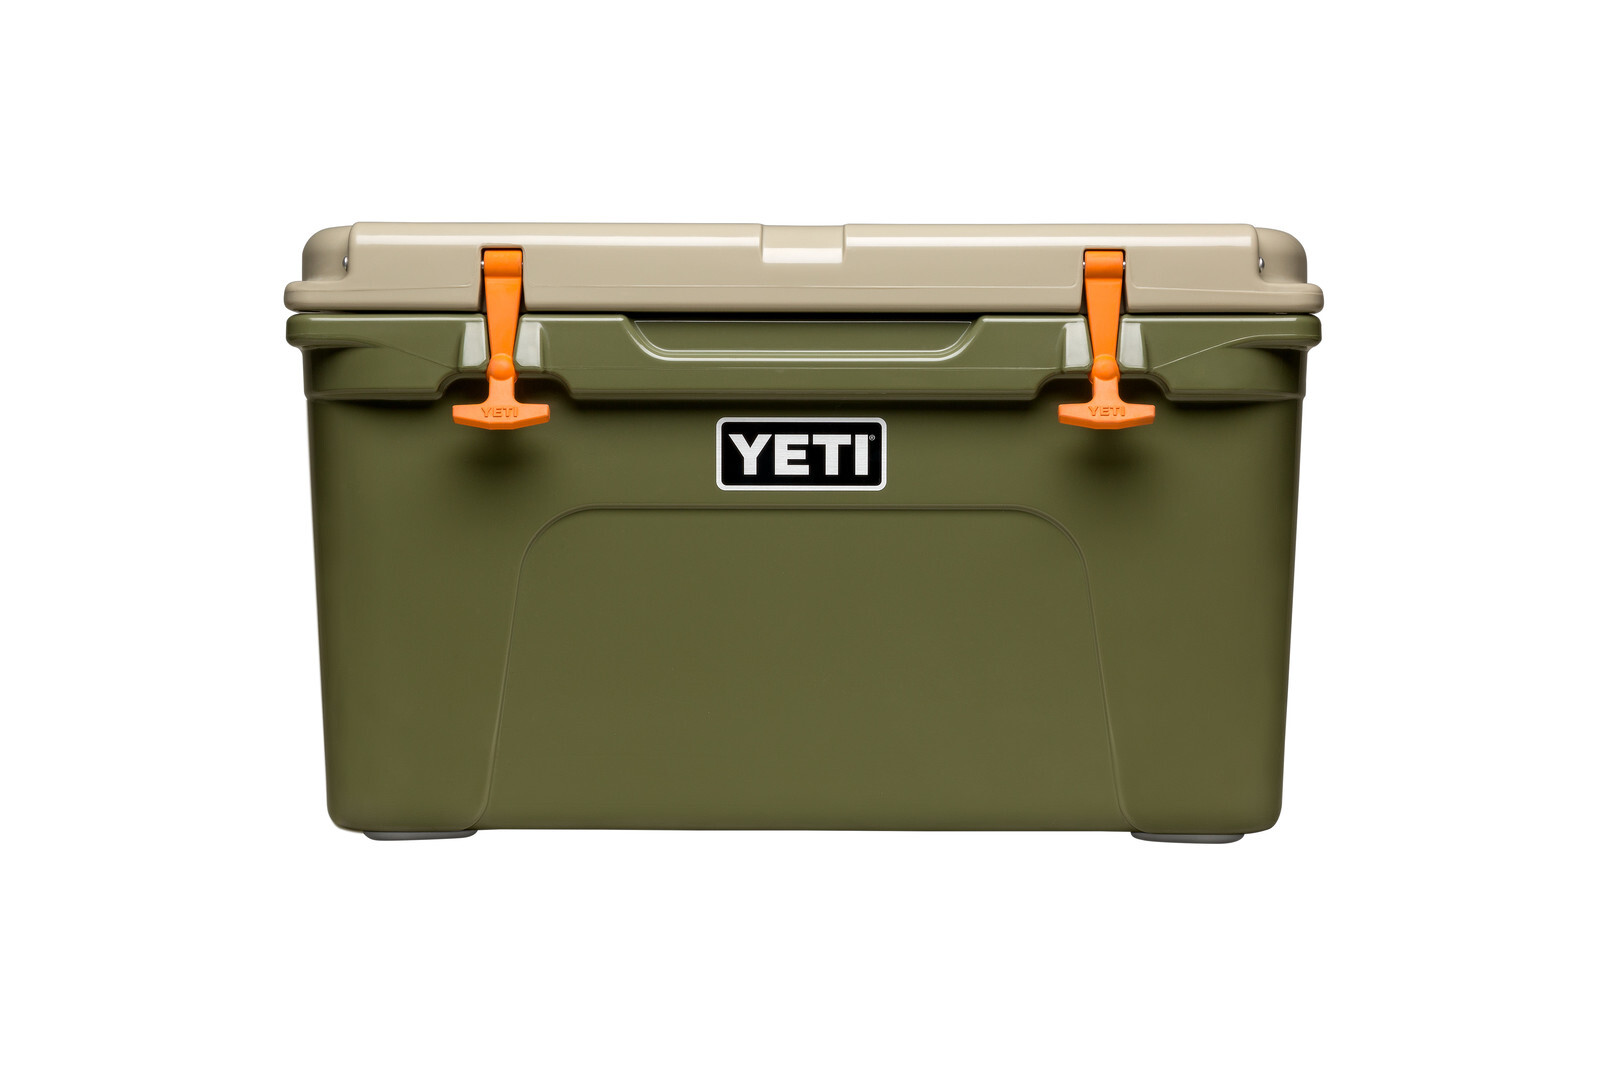 Yeti Tundra Outback 45 Icebox - 36L - Limited Edition